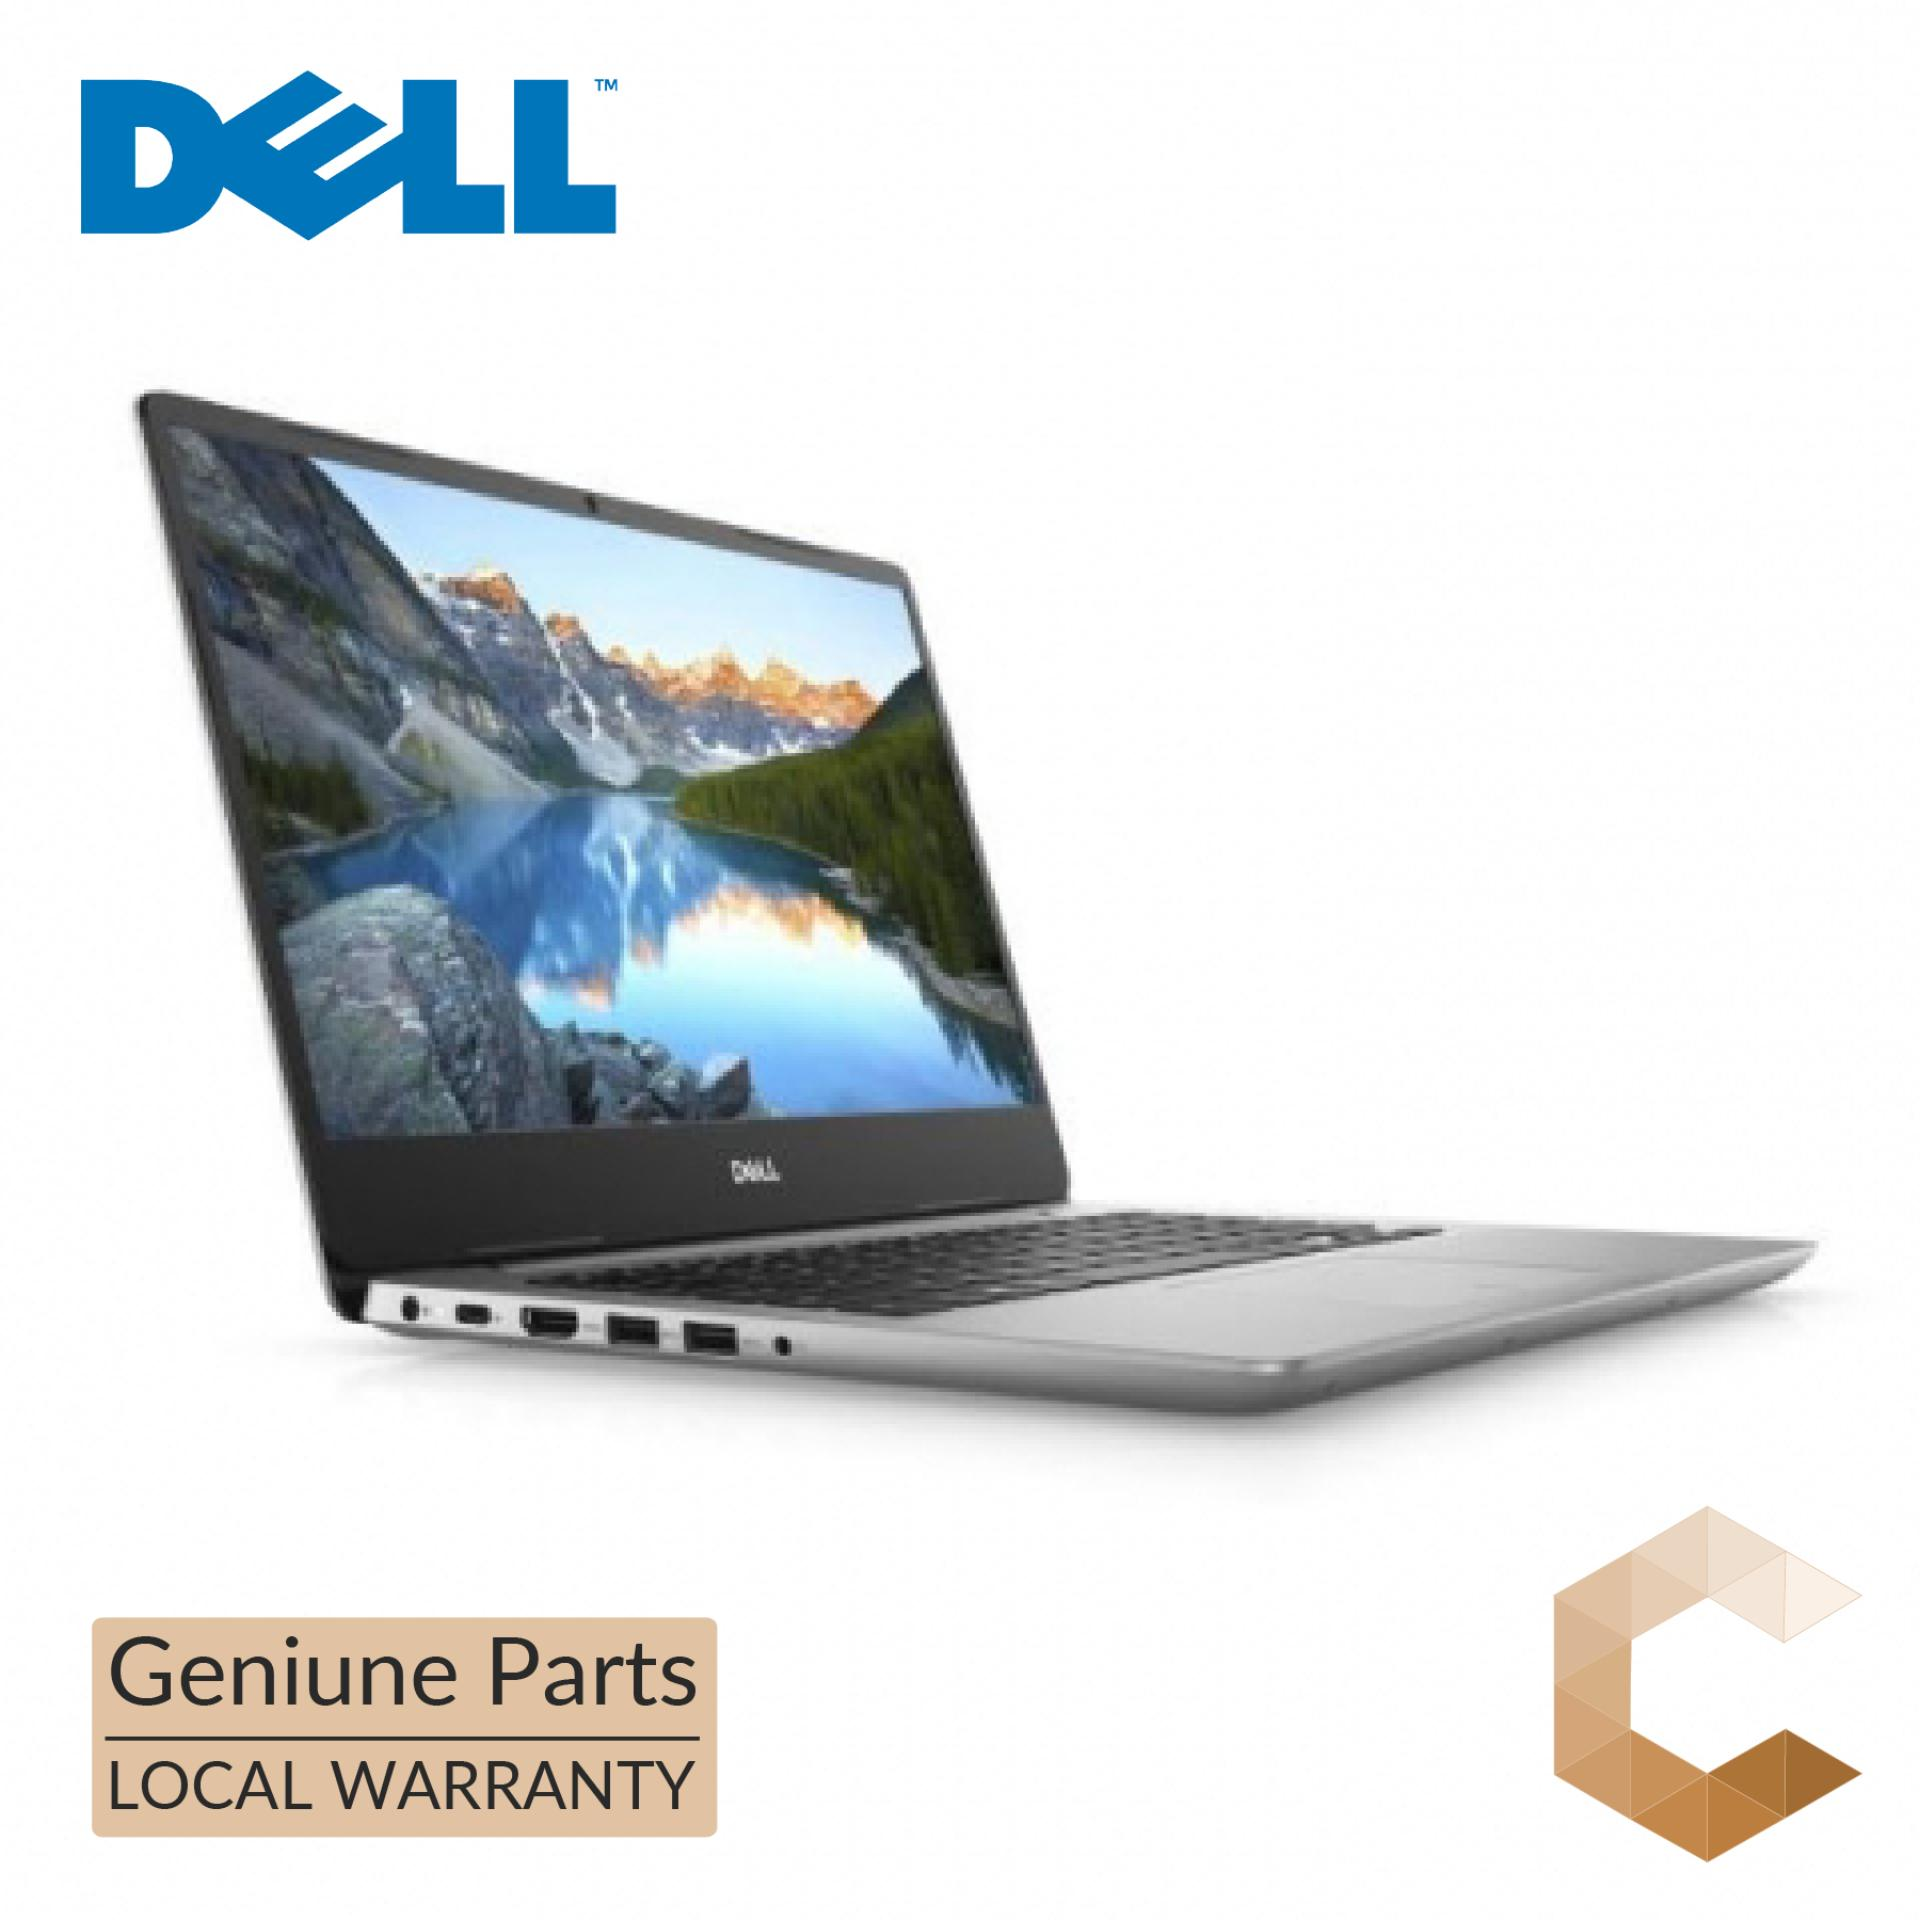 DELL NOTEBOOKS | 5480-826822G-W10